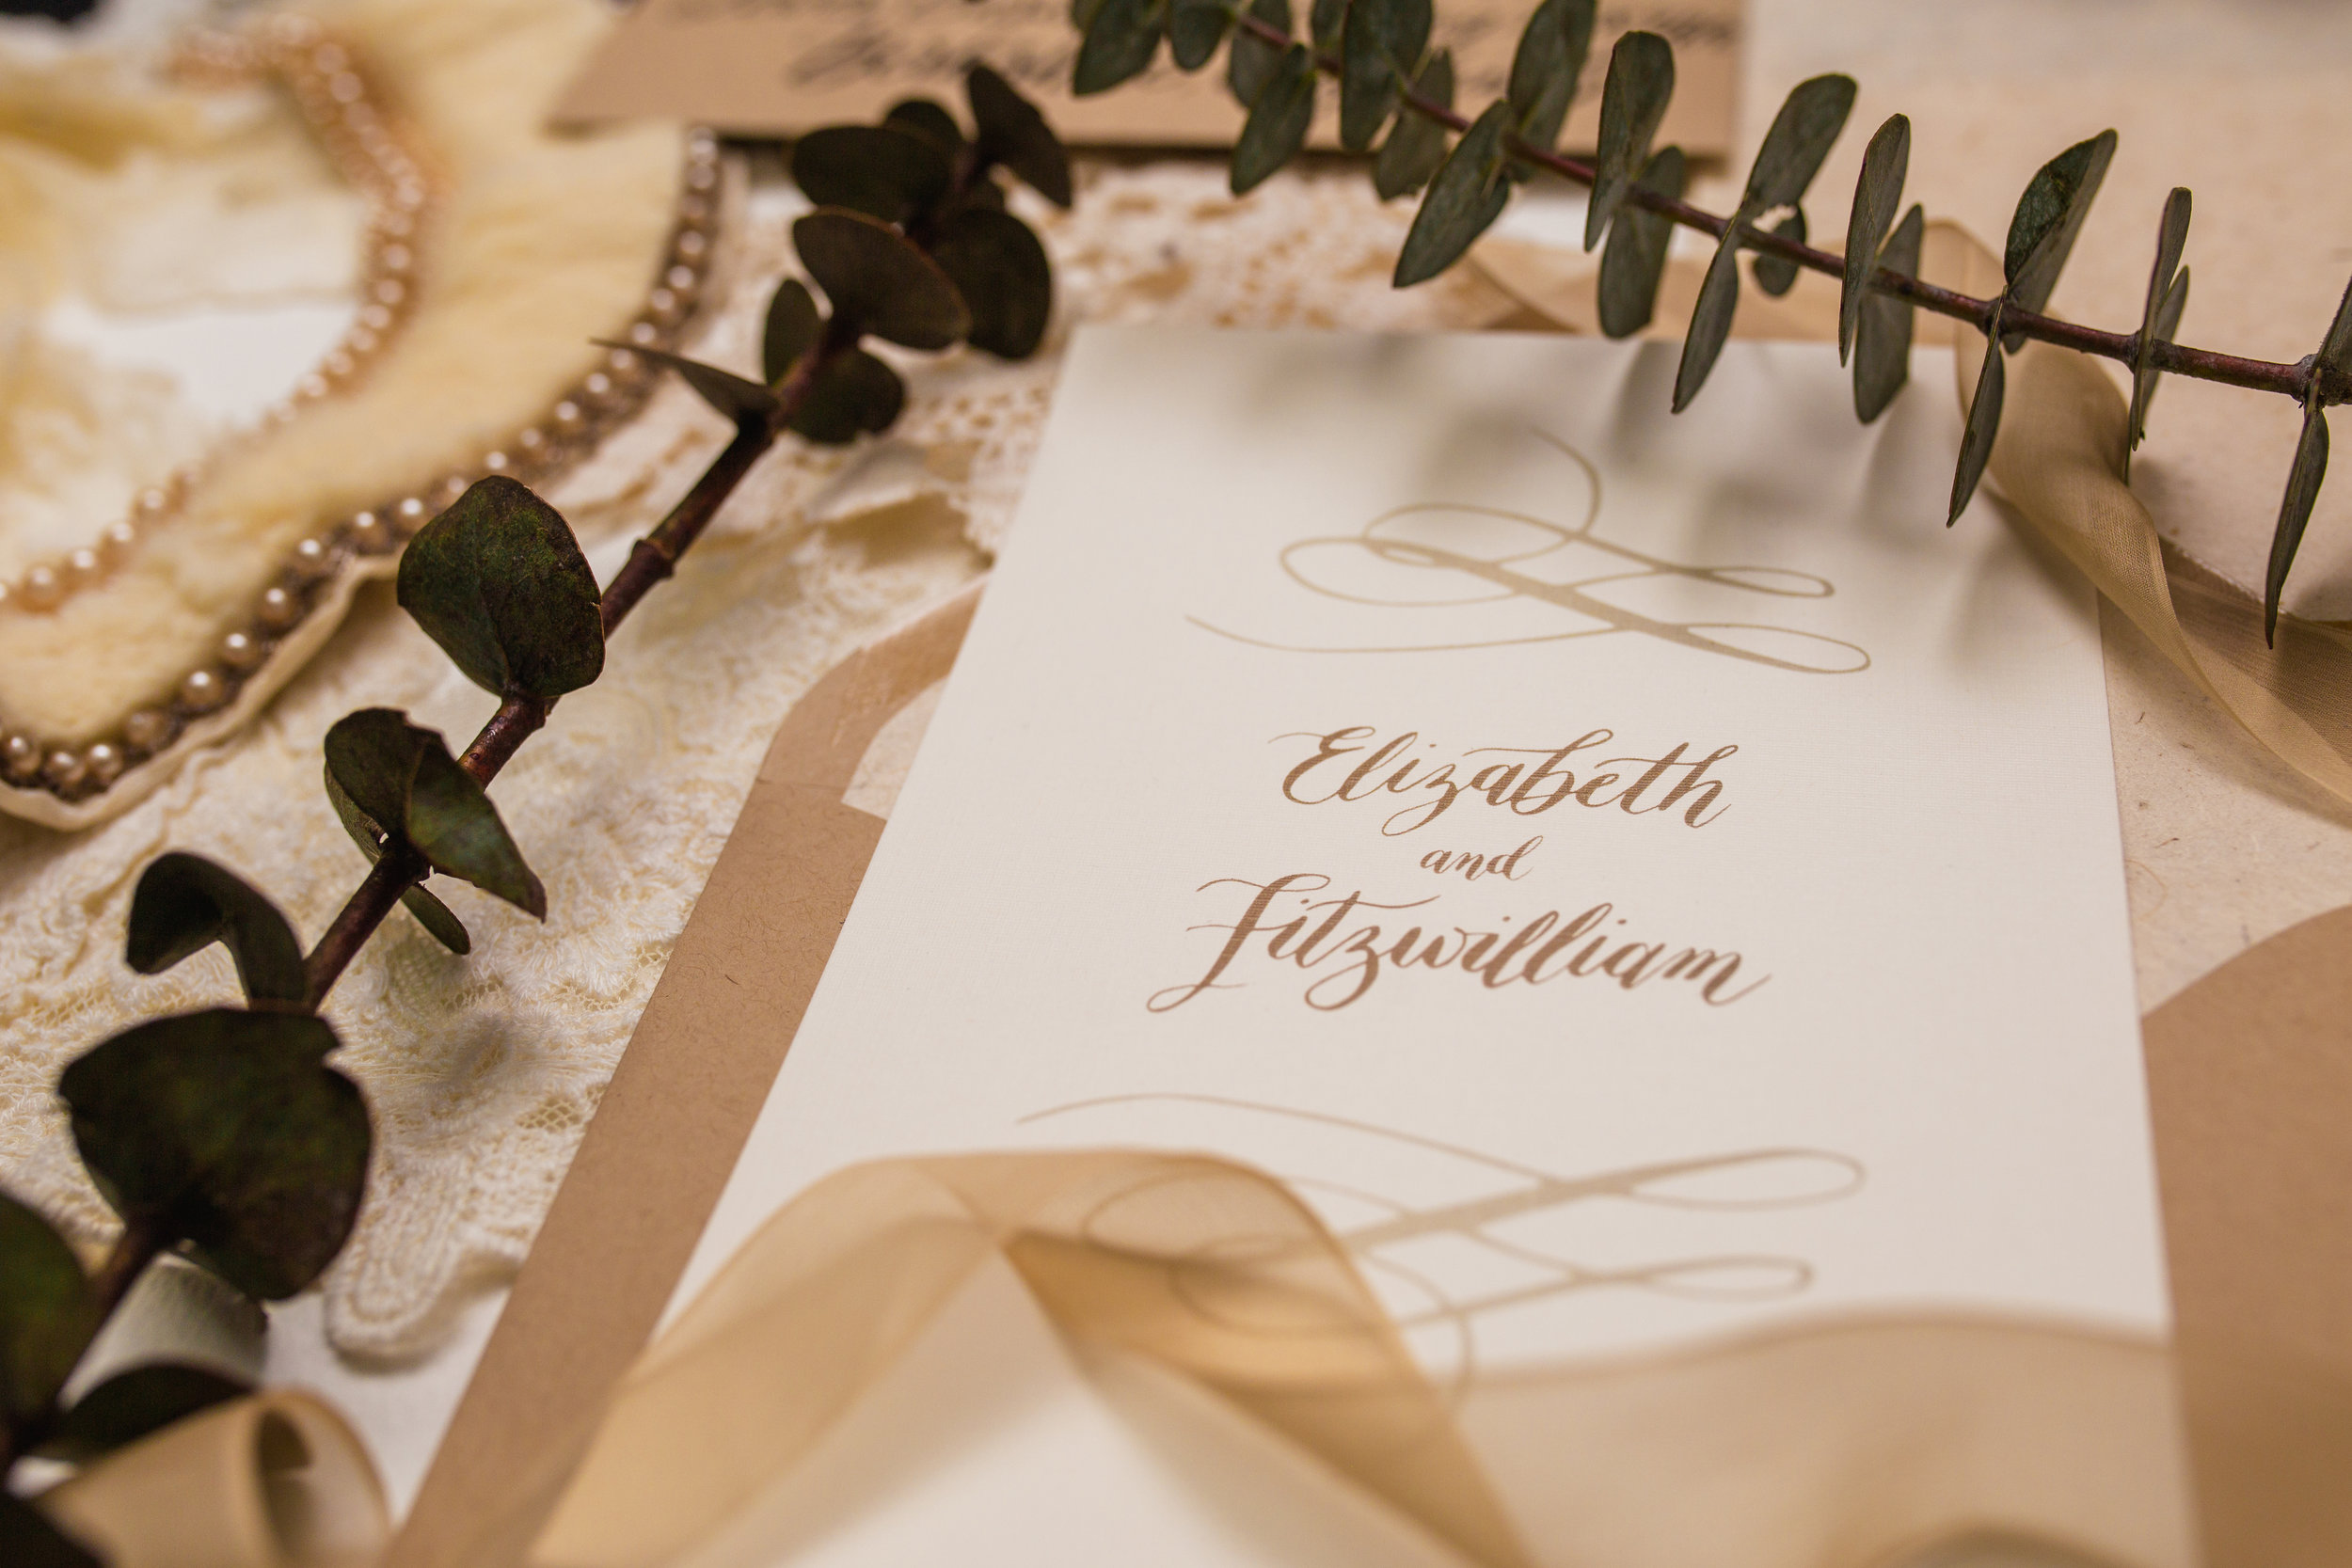 Torontoweddinginvitations-32.jpg